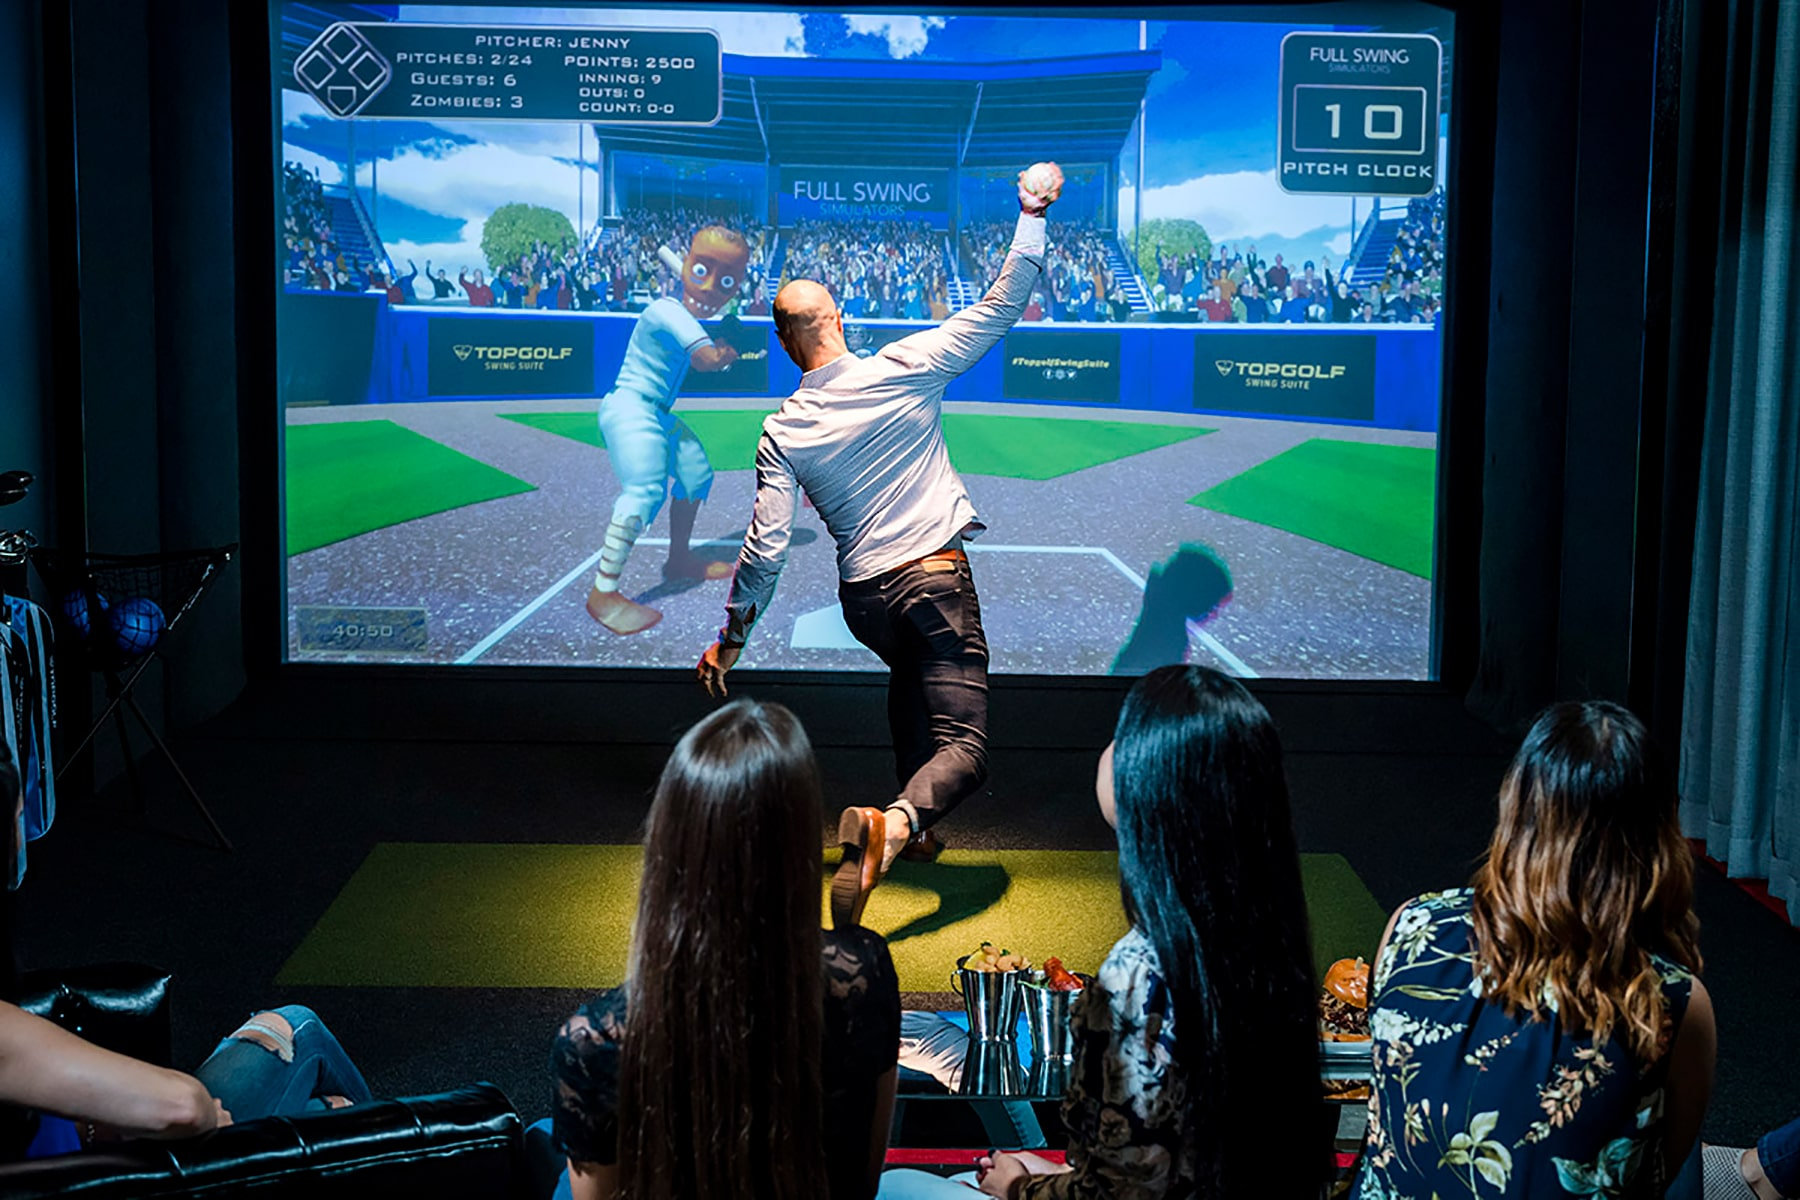 Topgolf® Swing Suite in New York